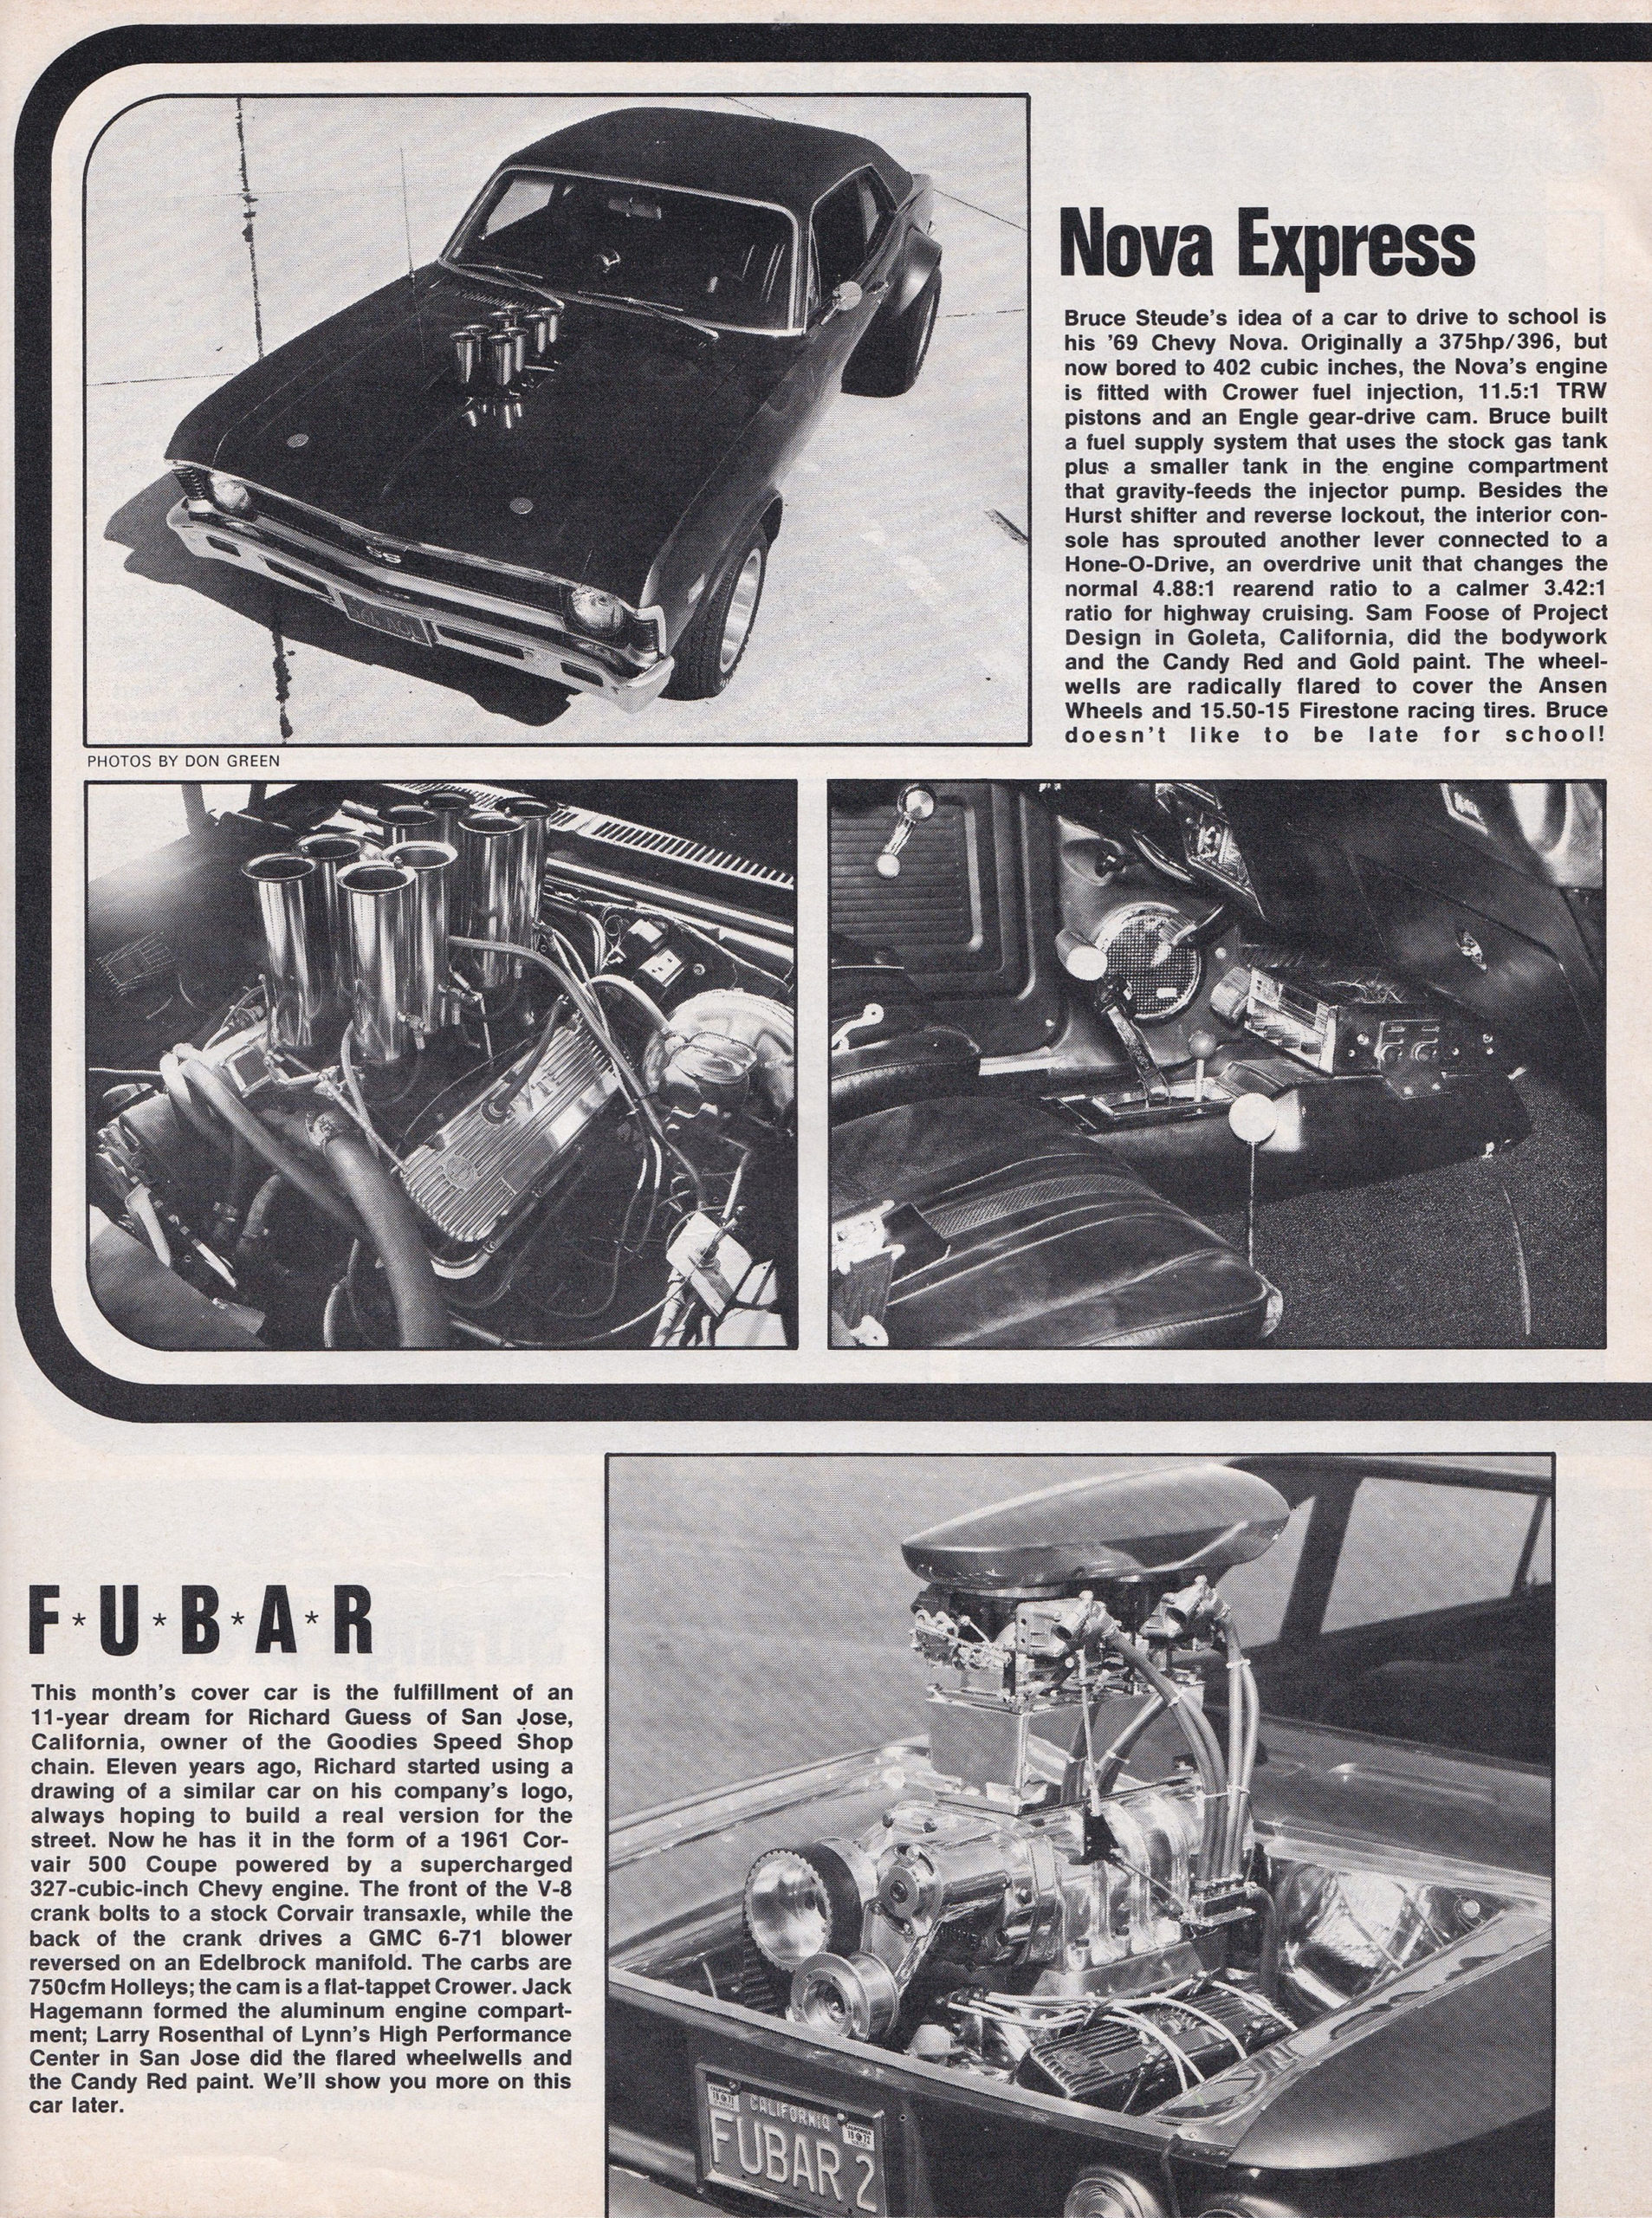 Street Freaks section from June 1972 issue of Car Craft, page 5.